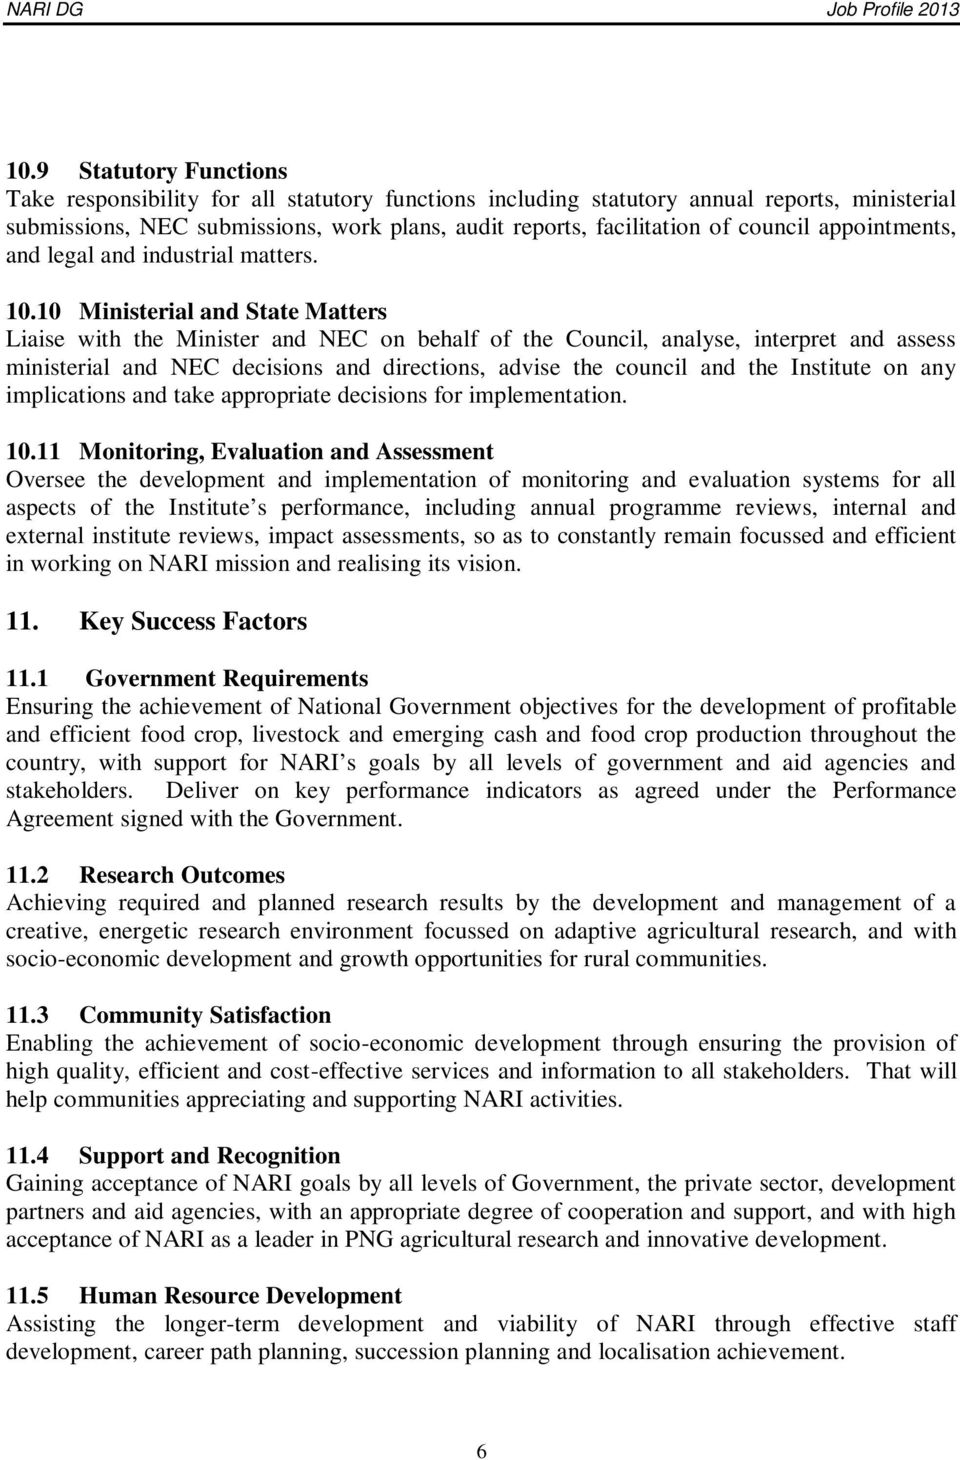 POSITION DESCRIPTION (JOB PROFILE) DIRECTOR-GENERAL PNG